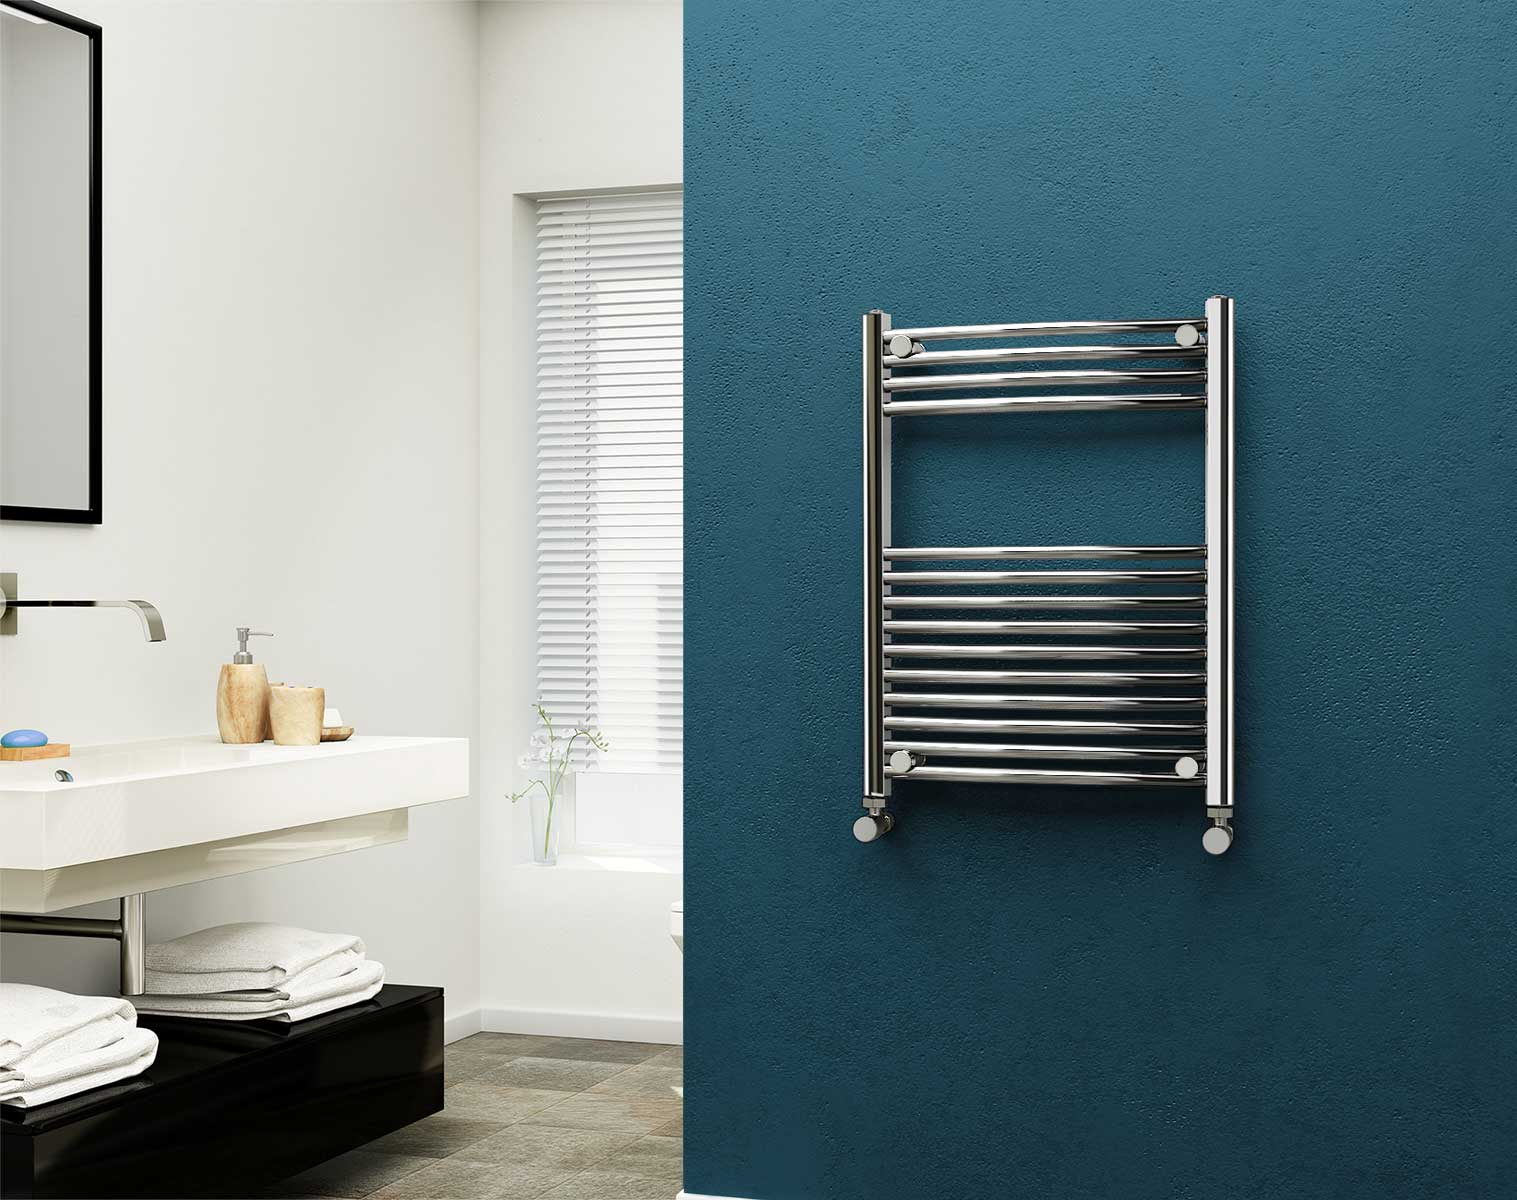 Brushed Chrome Bathroom Radiators: Eastgate Chrome Curved Heated Towel Rail 800mm High X